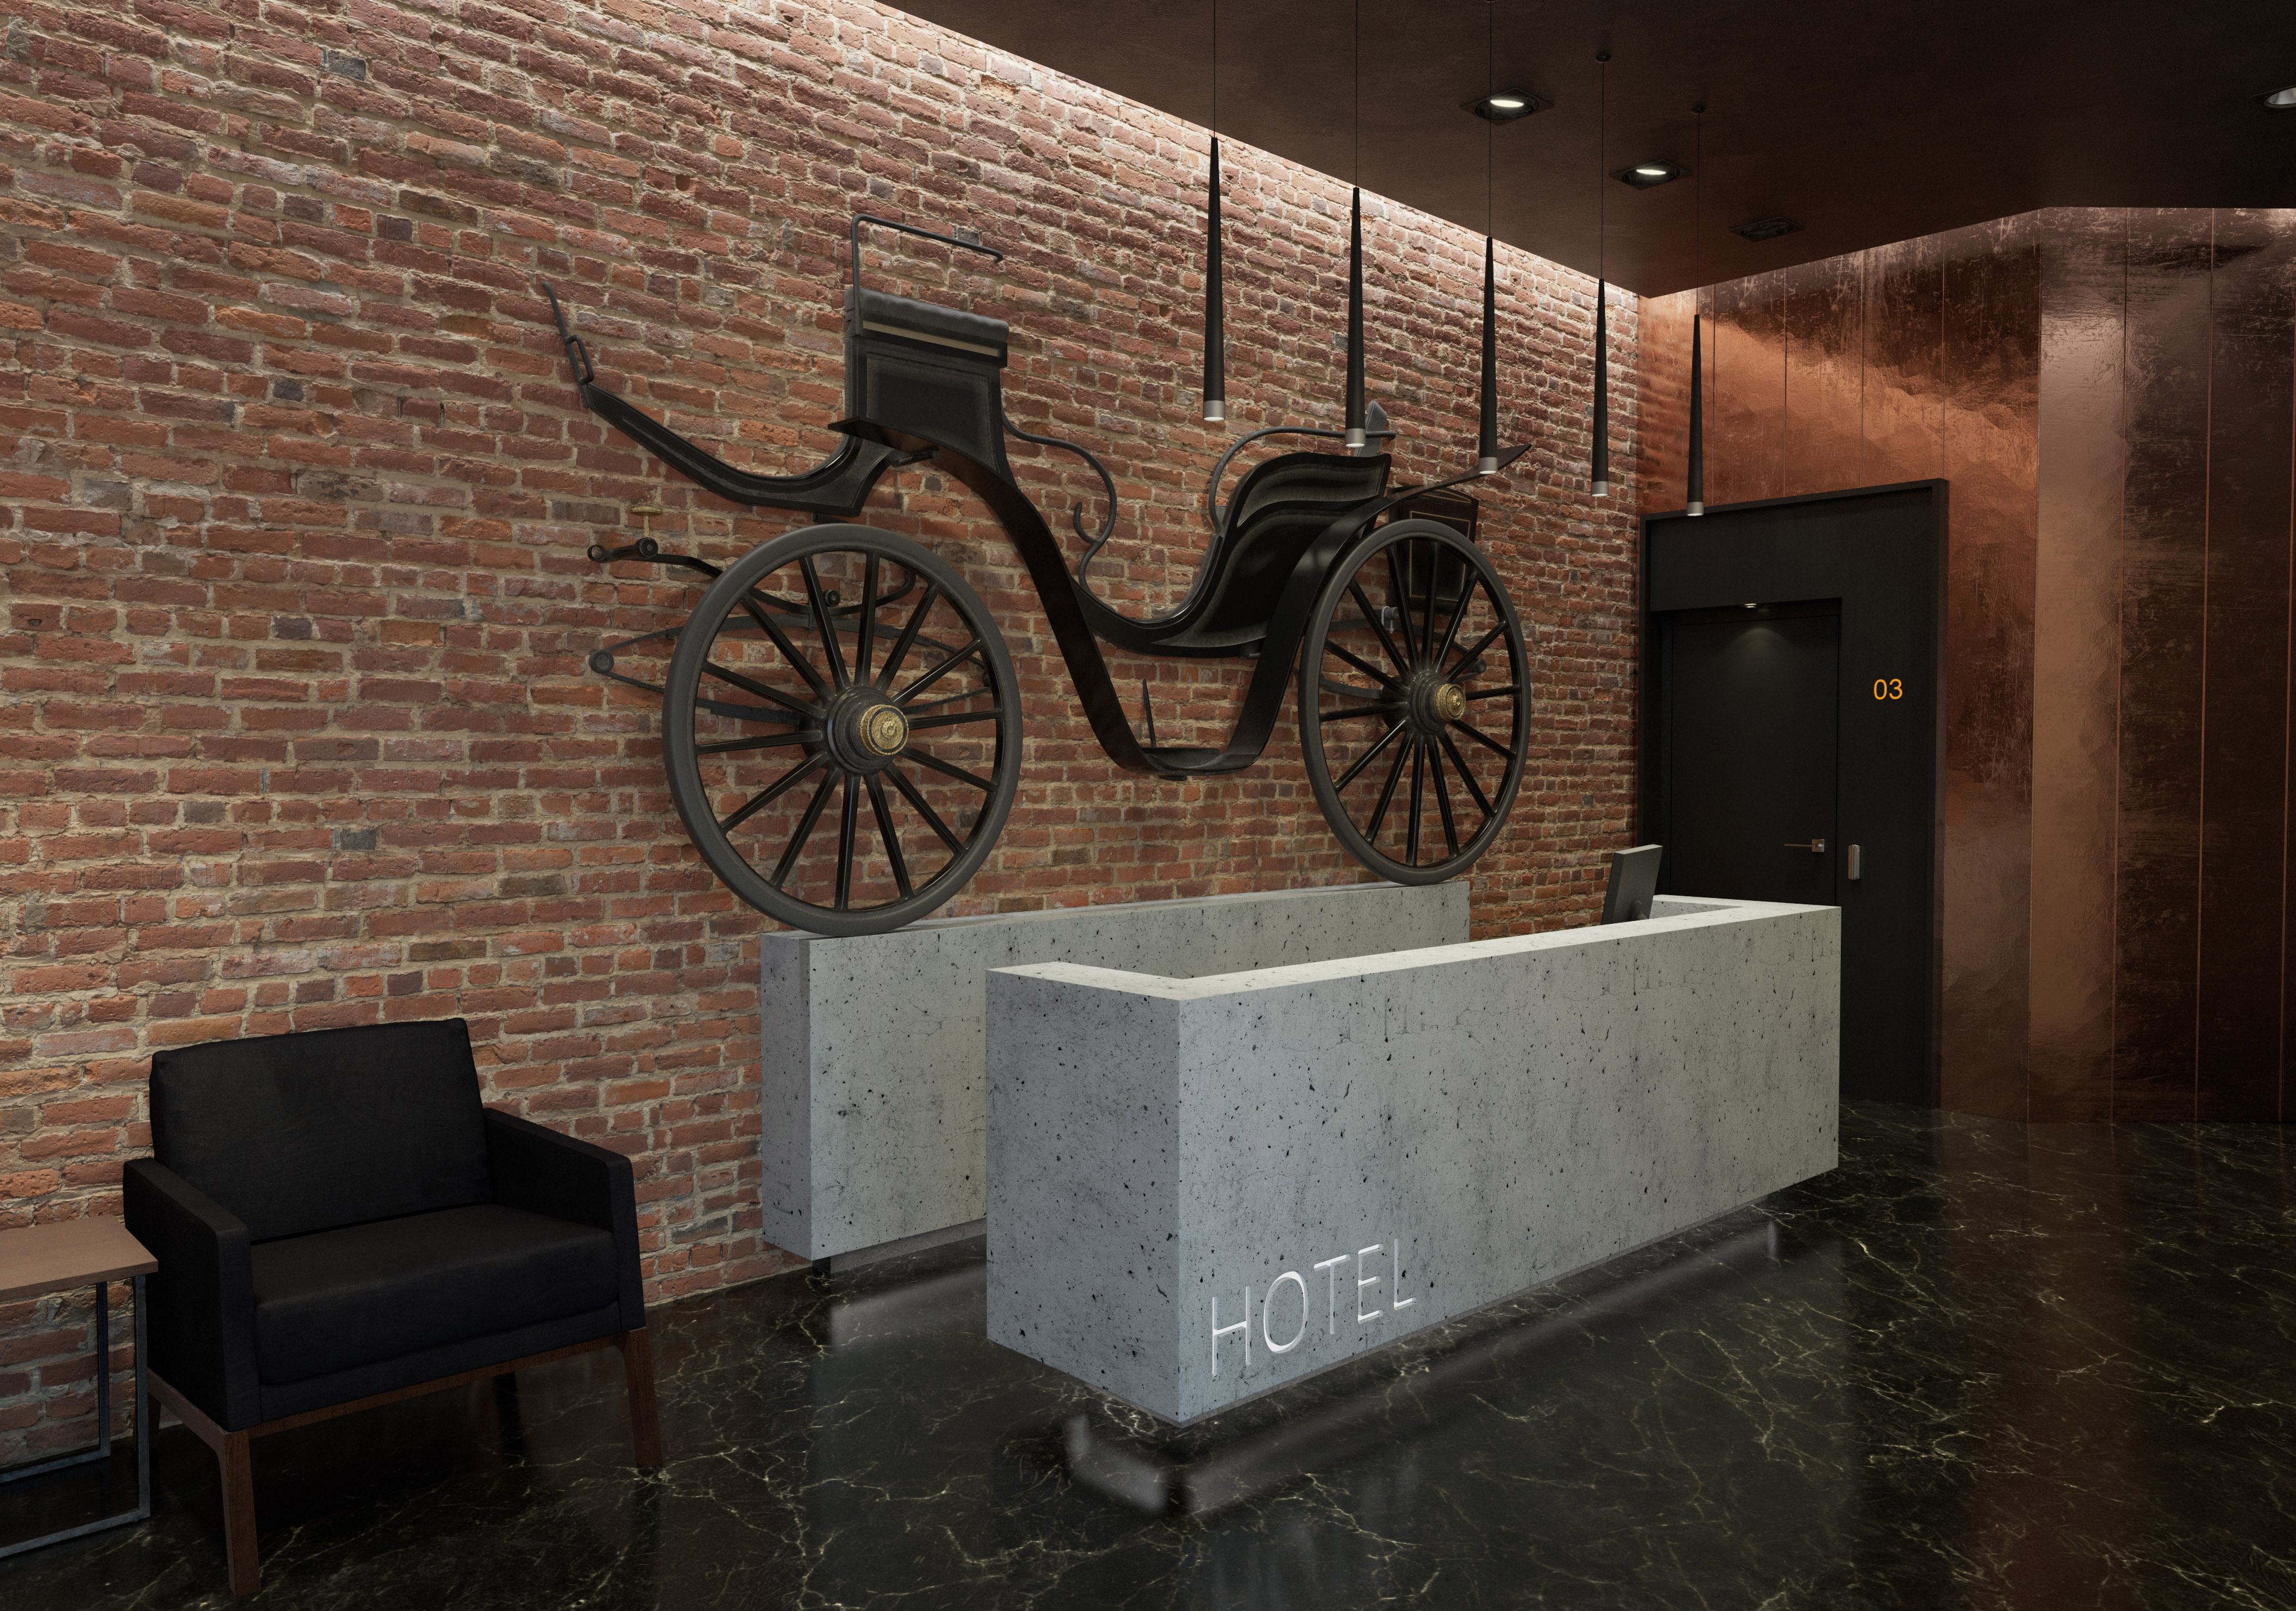 3D visualizations - hotel reception with black horse-drawn carriage